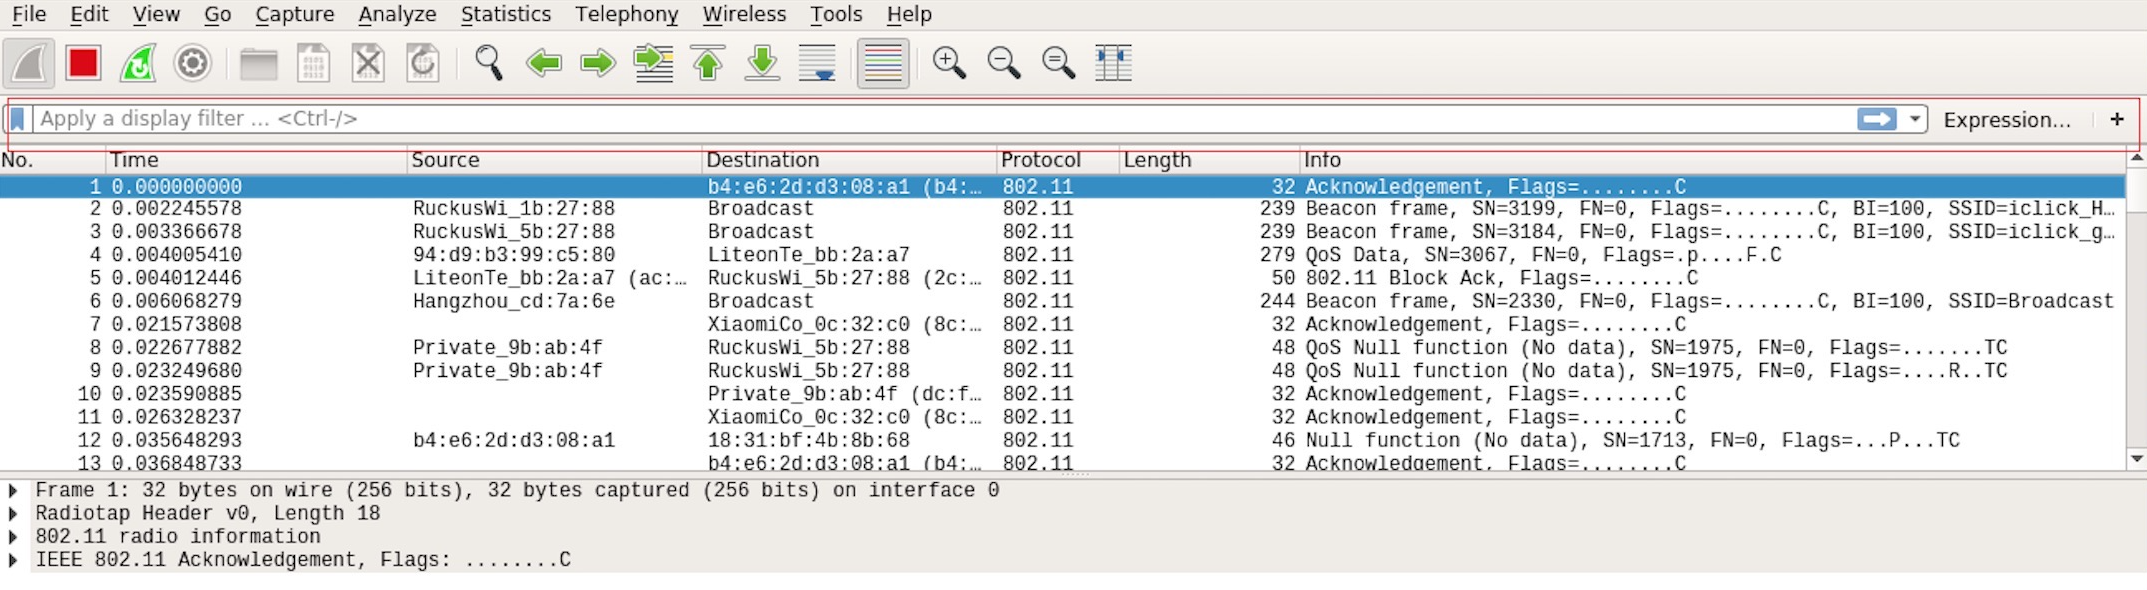 Setting up Filters in Wireshark